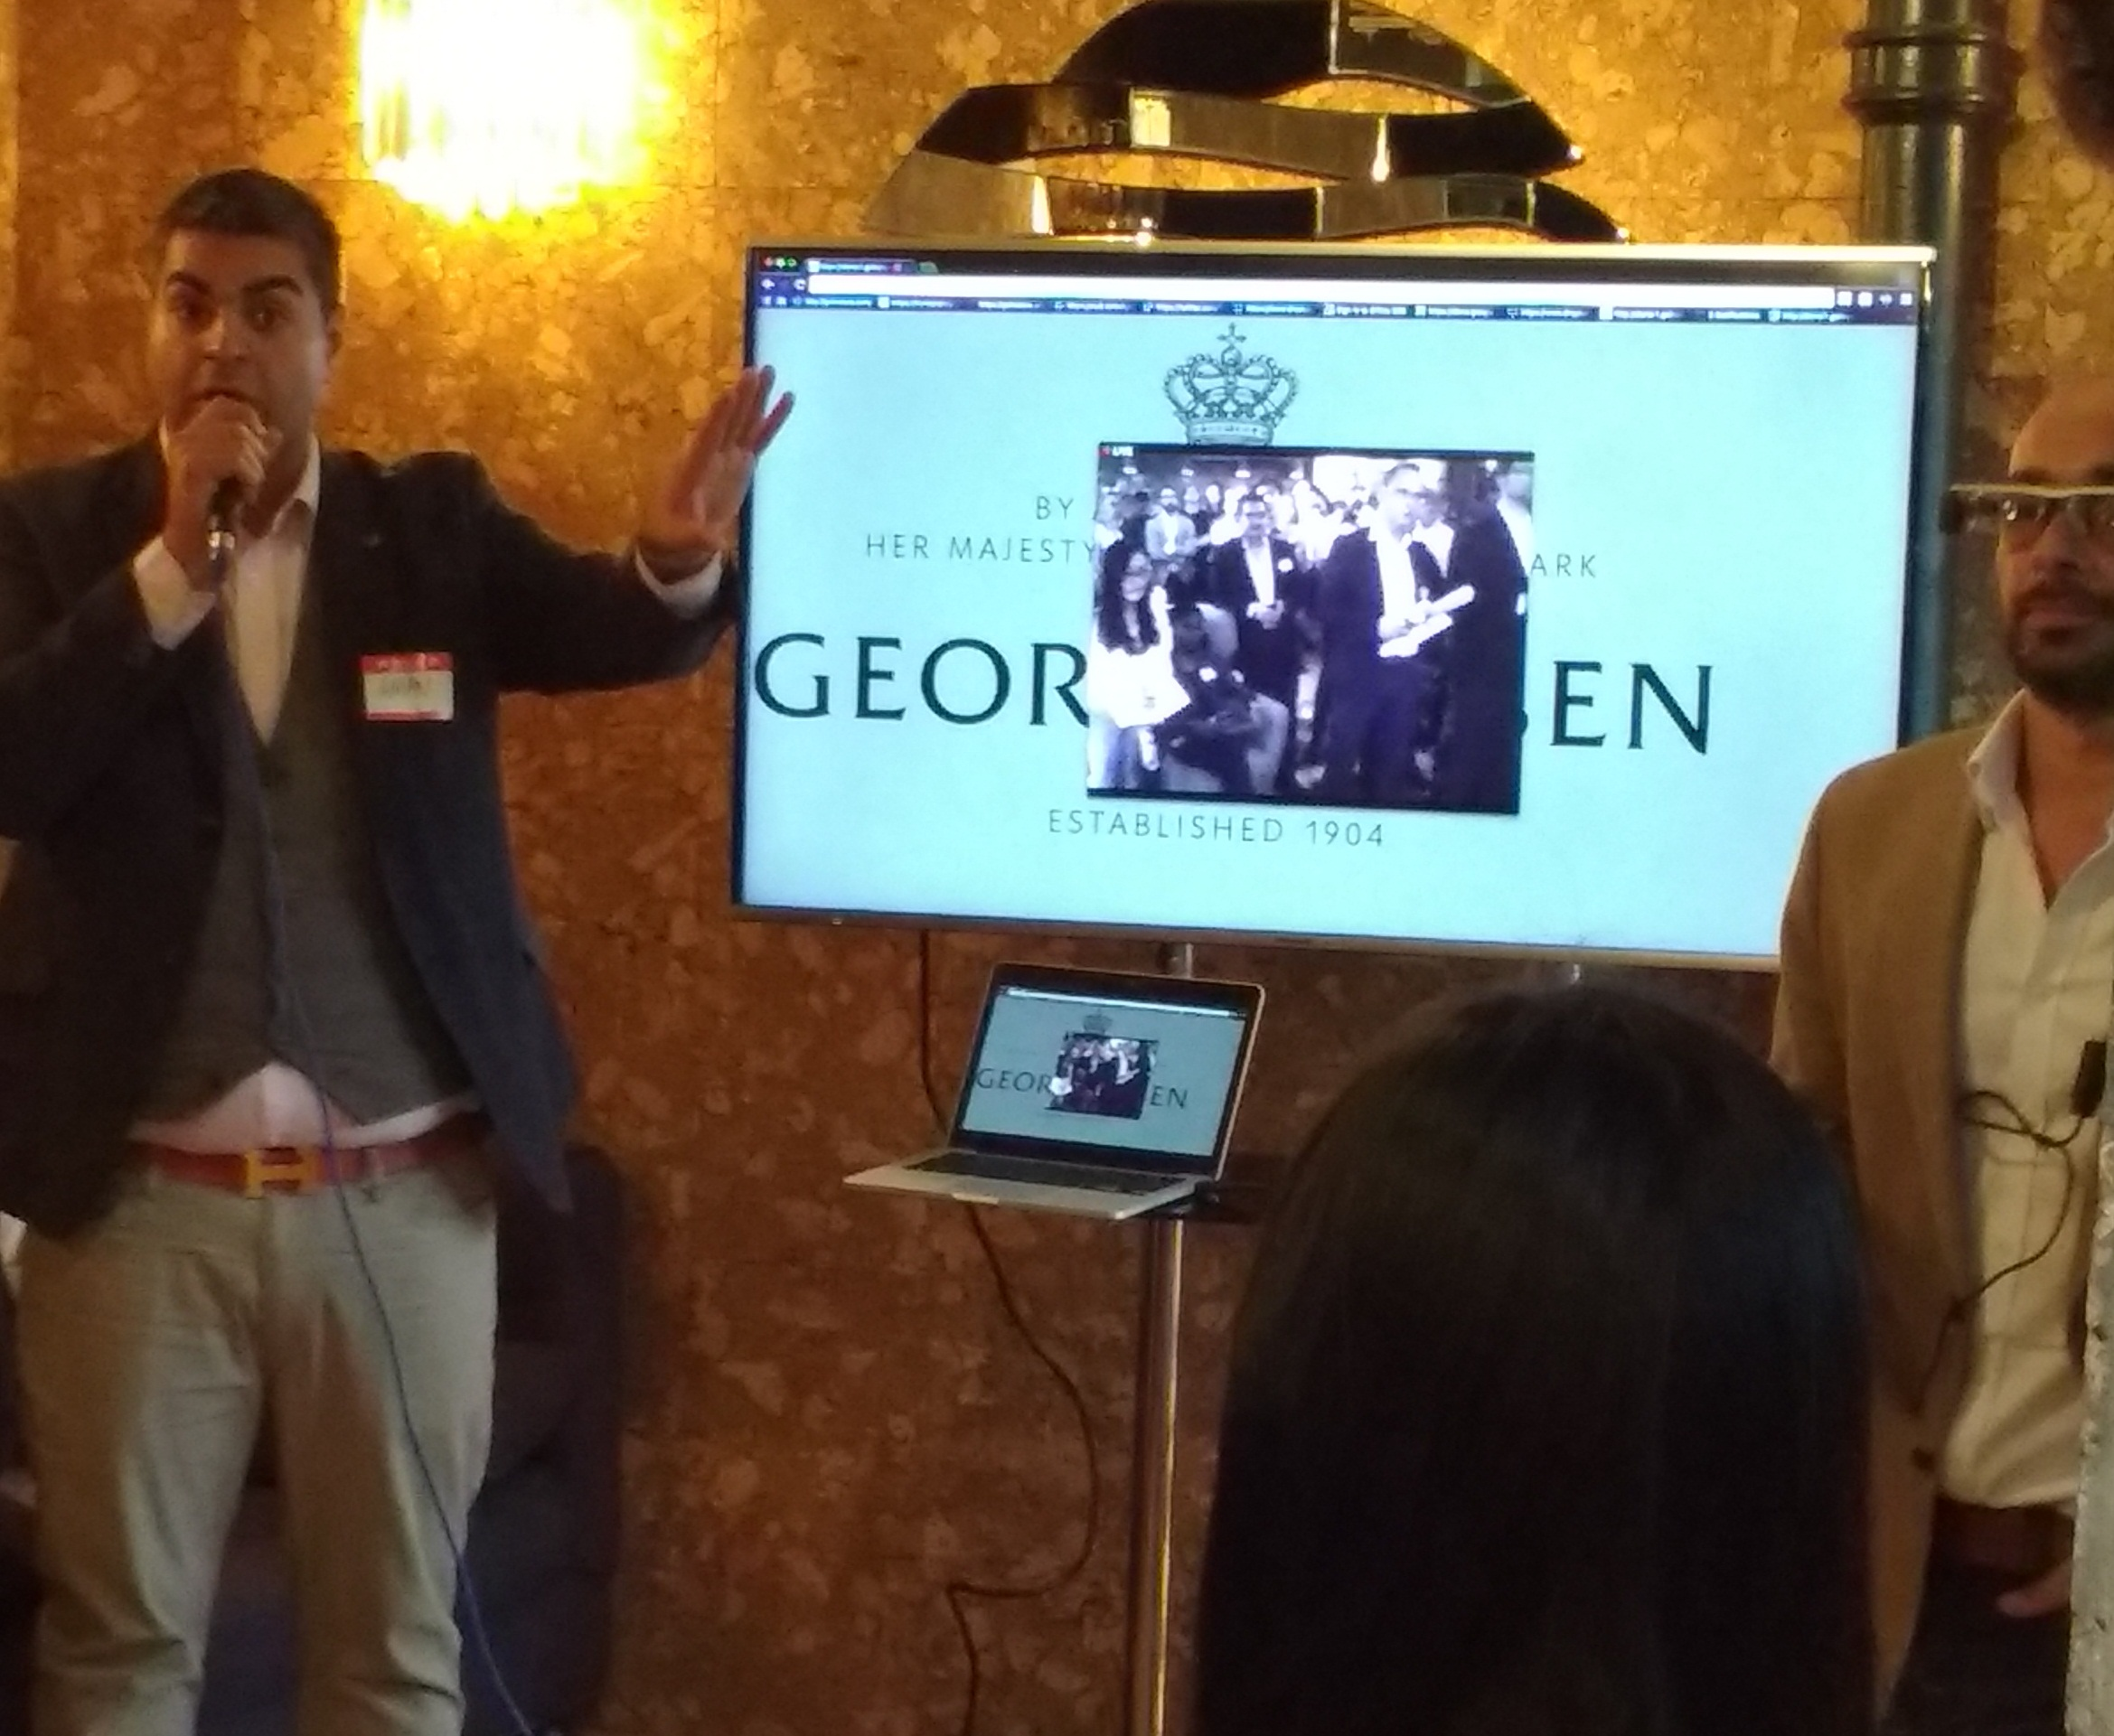 GoInStore at the Tech London Advocates event